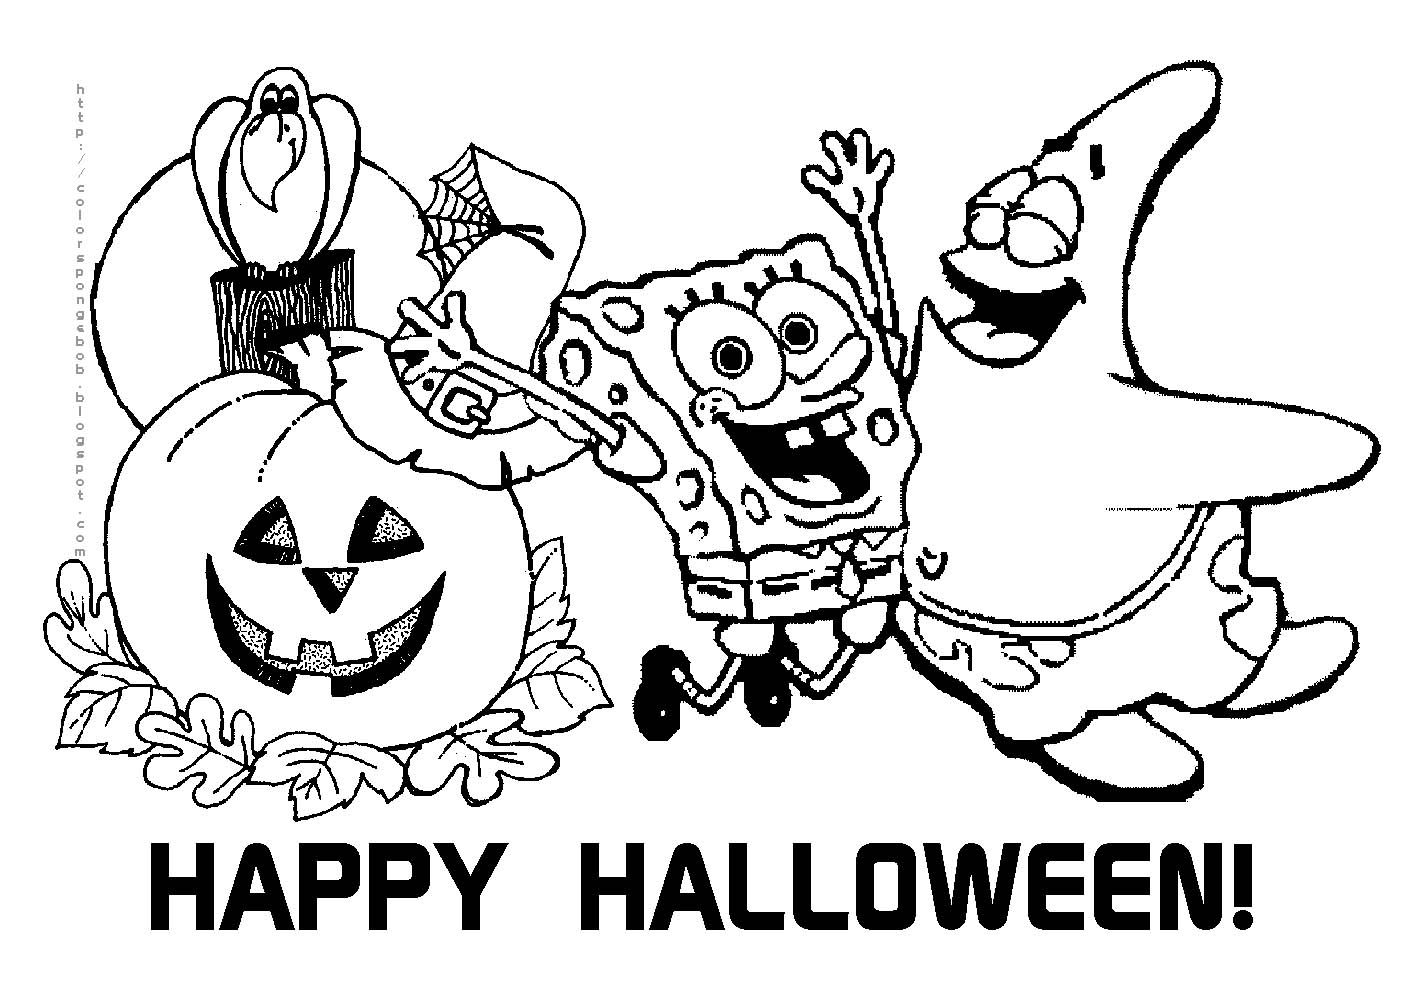 Free colouring pages for 10 year olds - Hundreds Of Free Printable Spongebob Squarepants Coloring Pages Activity Sheets And Party Invitations For Spongebob Squarepants Fans